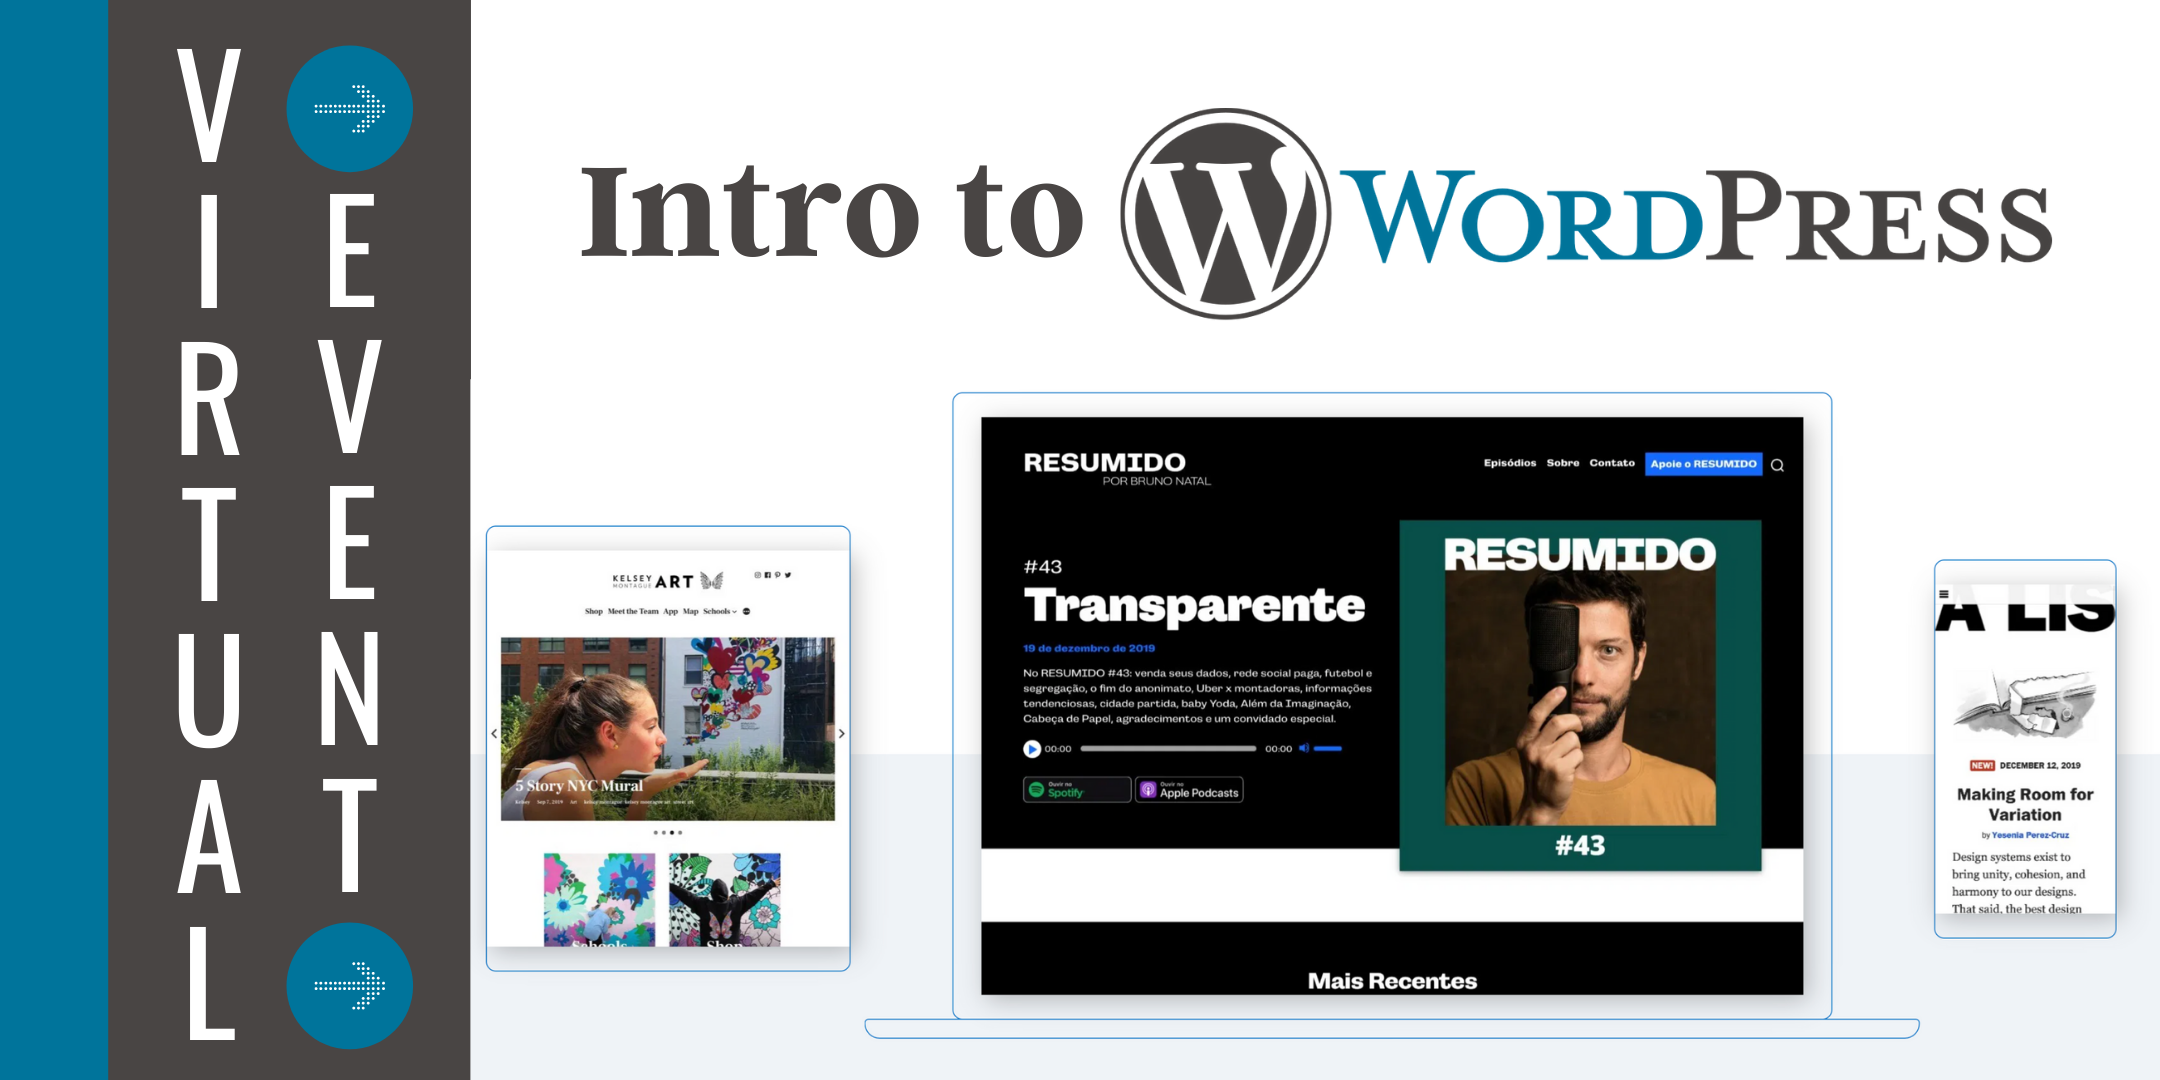 Intro to Word Press image